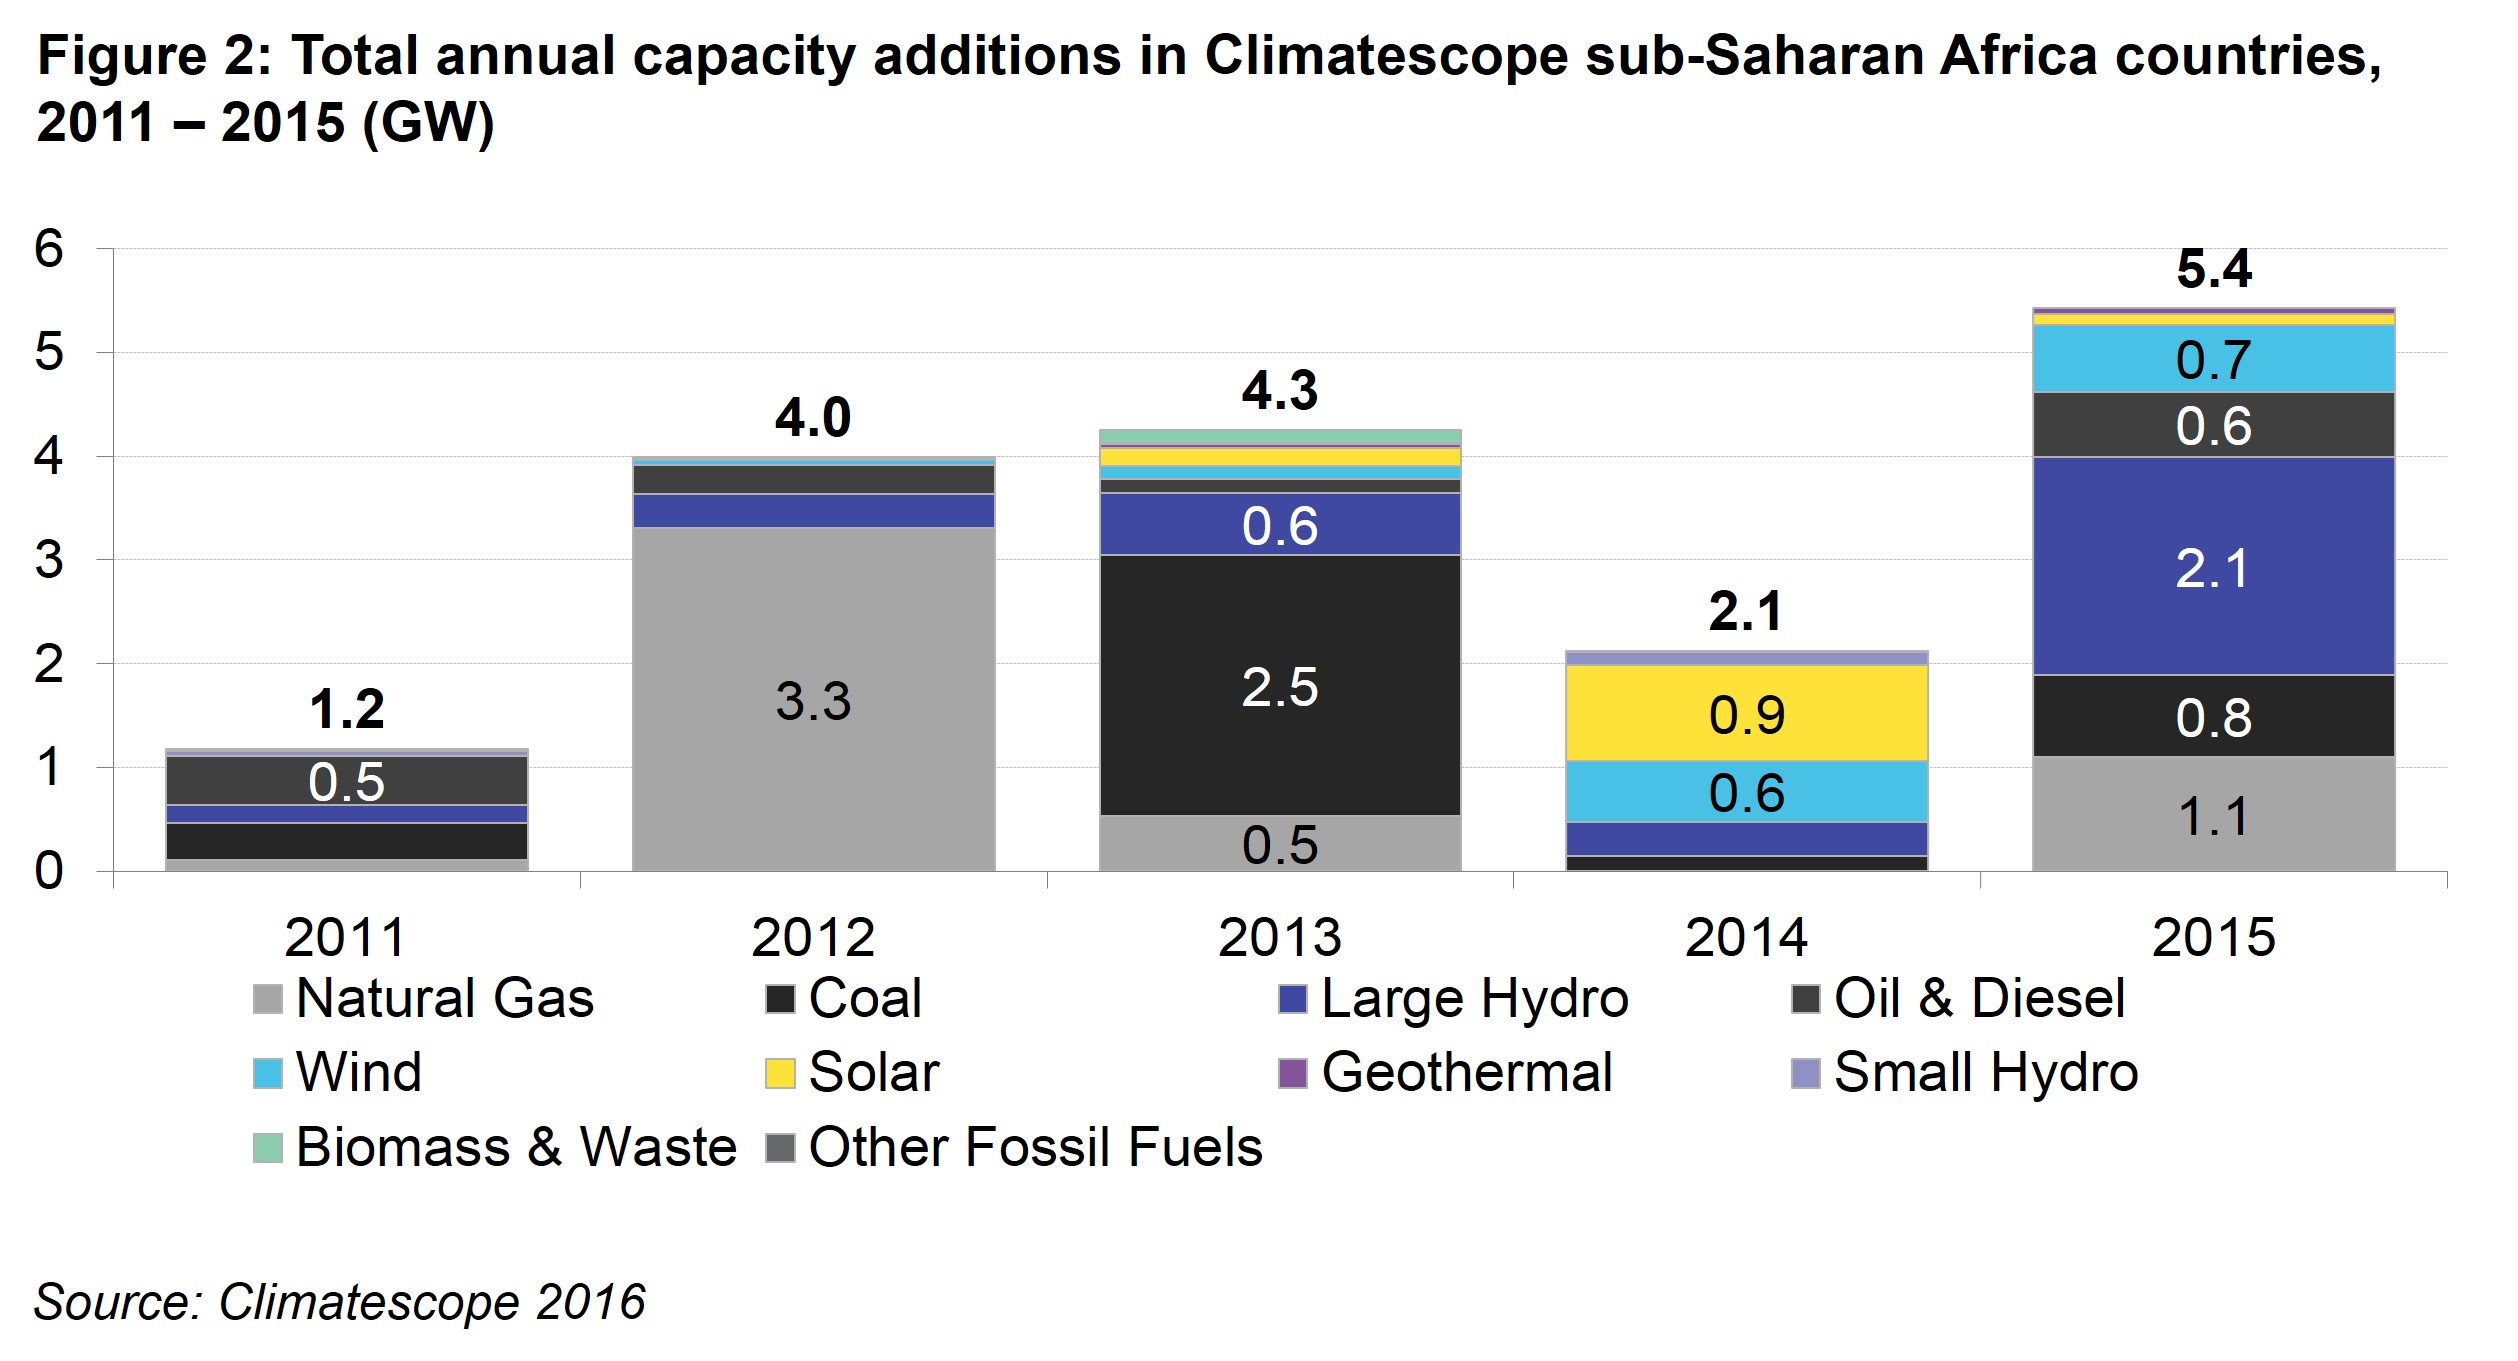 AM Fig 2 - Total annual capacity additions in Climatescope sub-Saharan Africa nations, 2011 – 2015 (GW)